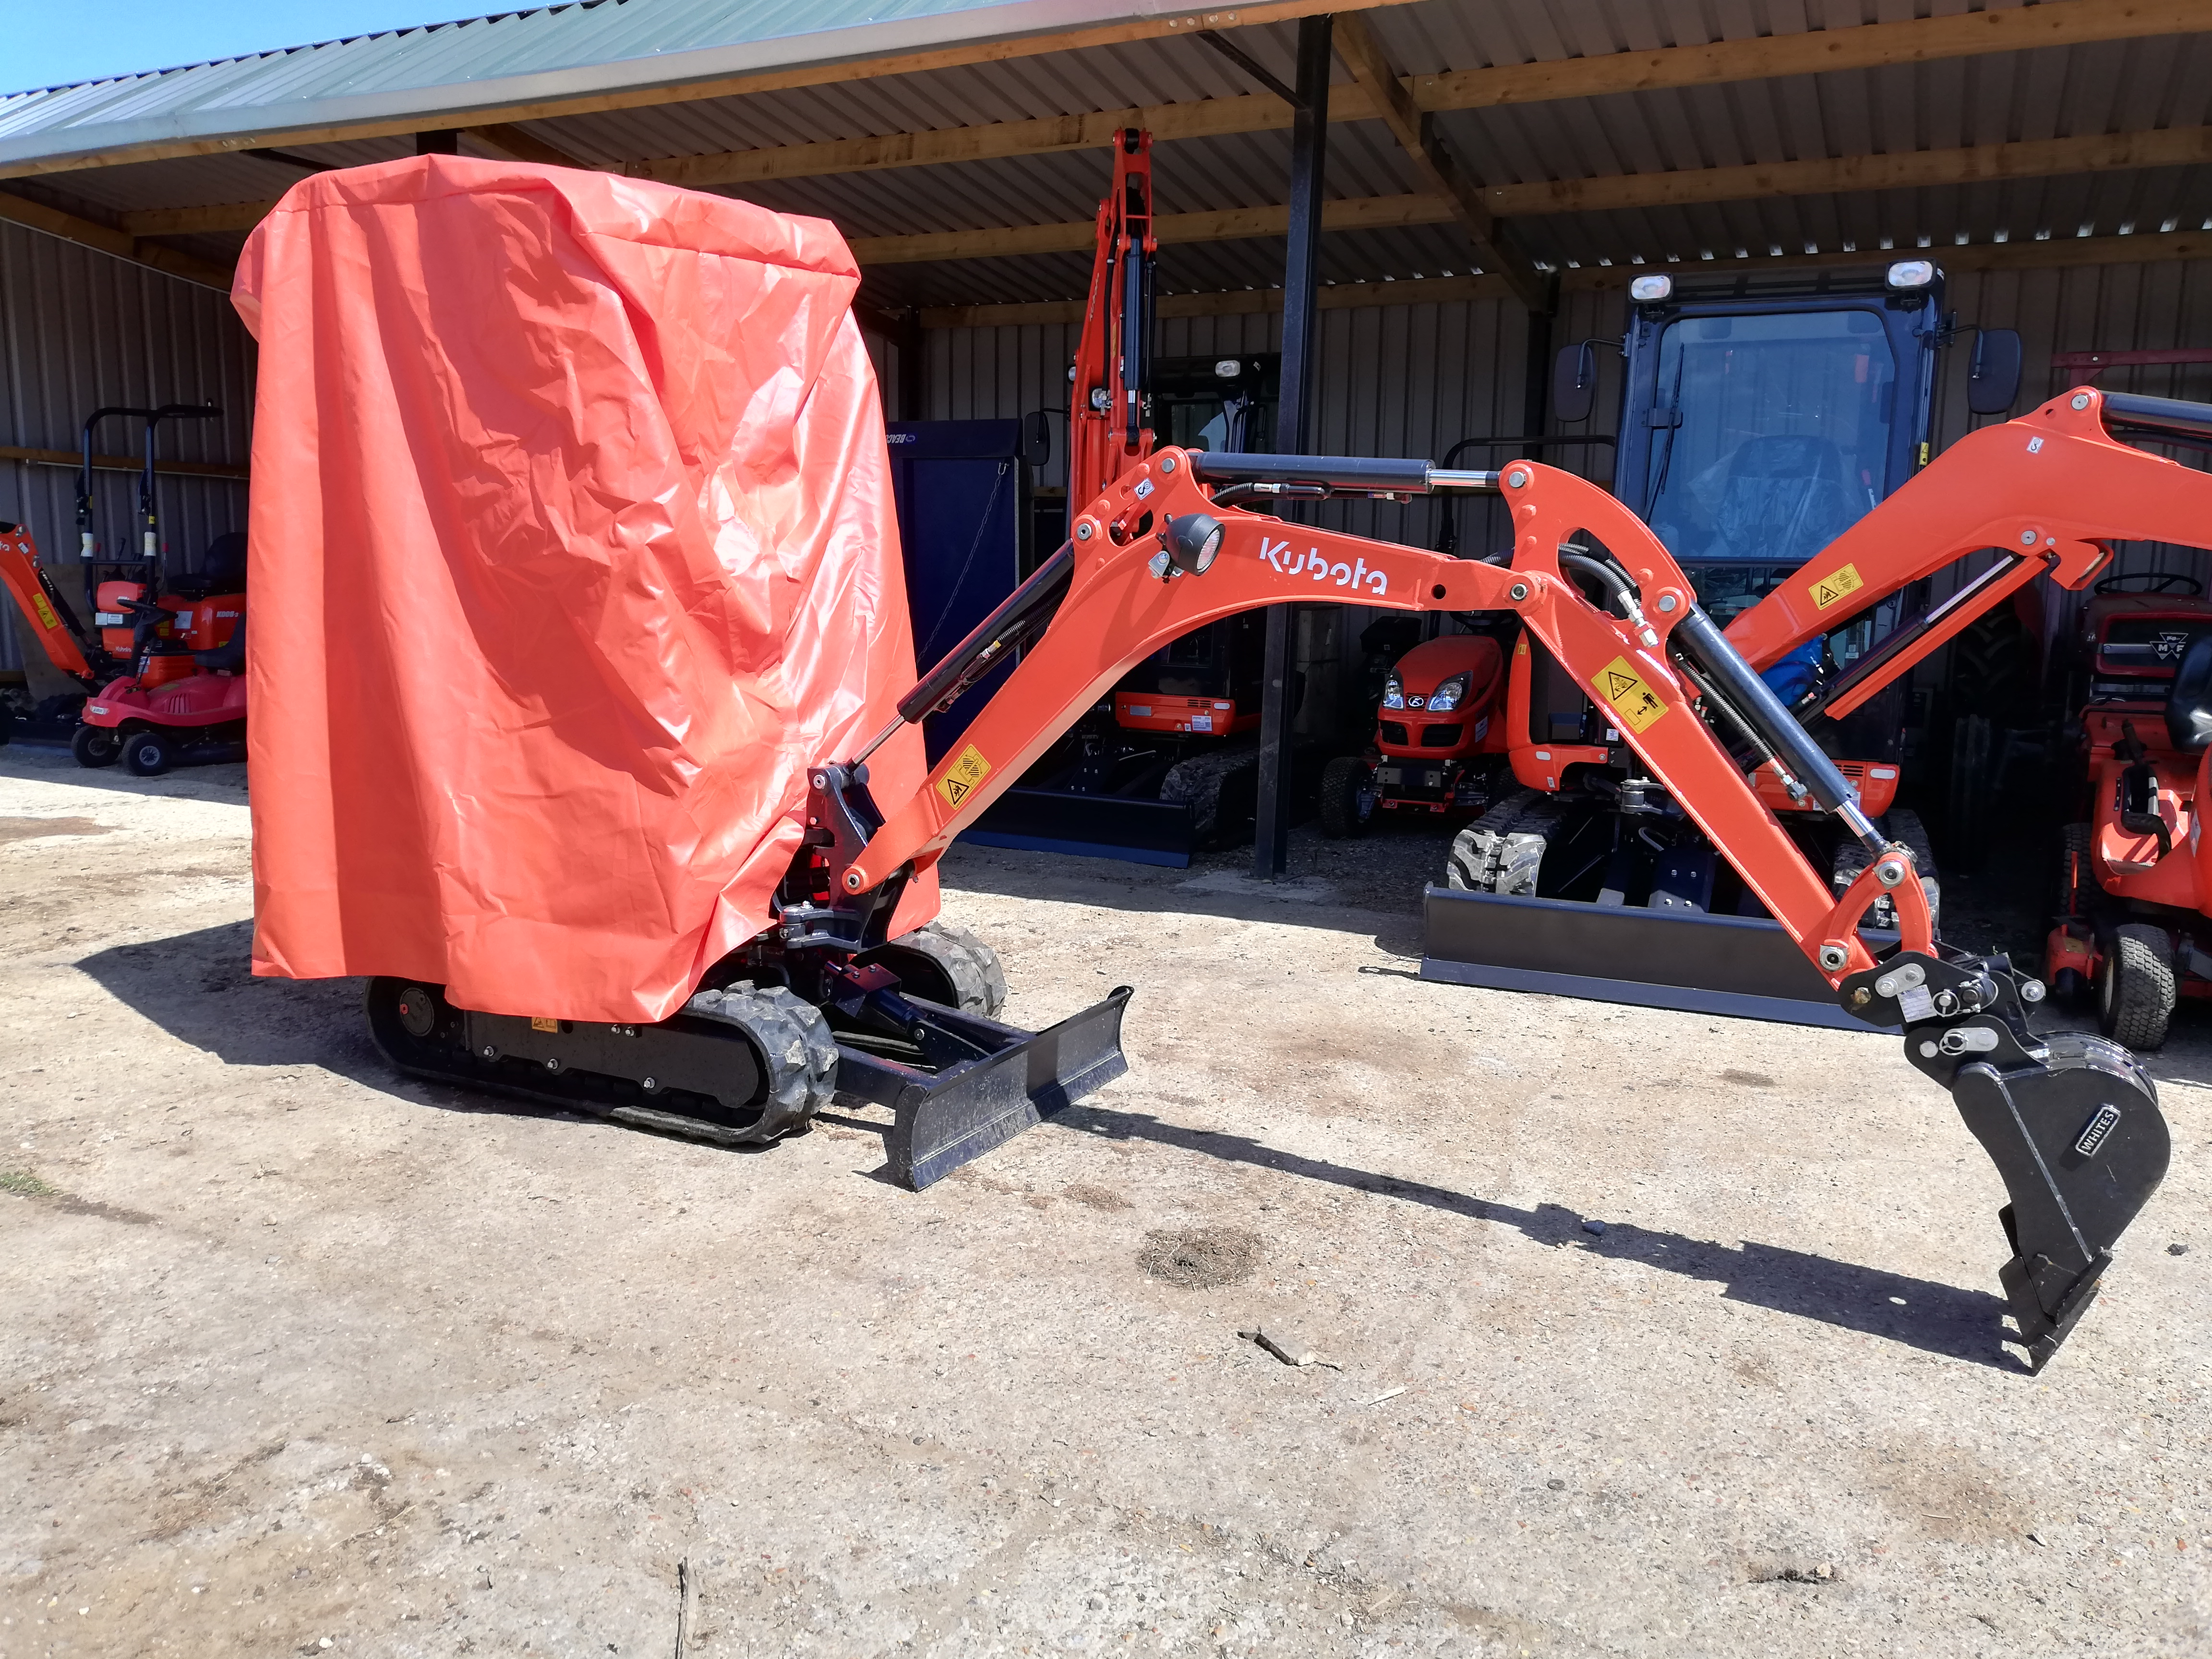 digger-cover-to-fit---kx015---019-kubota-excavators